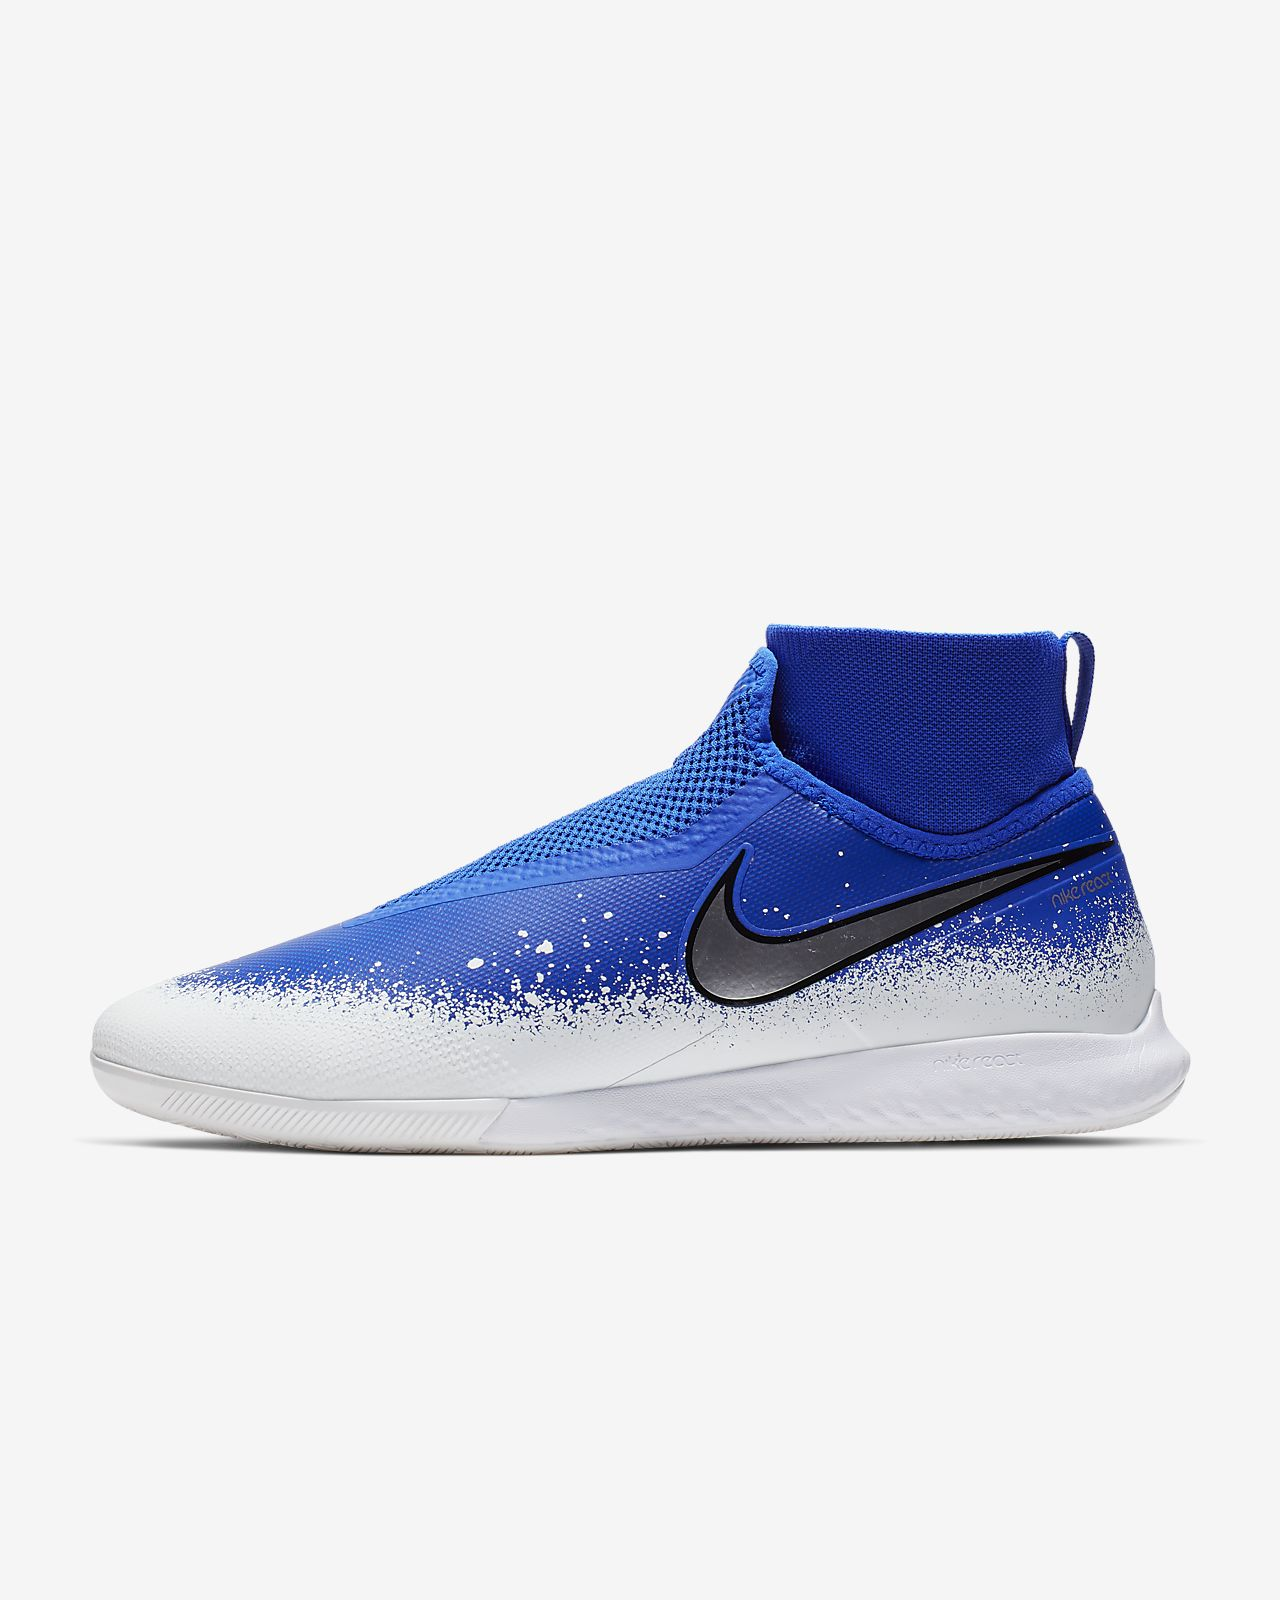 venta directa de fábrica en venta Precio 50% Nike React Phantom Vision Pro Dynamic Fit IC Indoor/Court Soccer Cleat